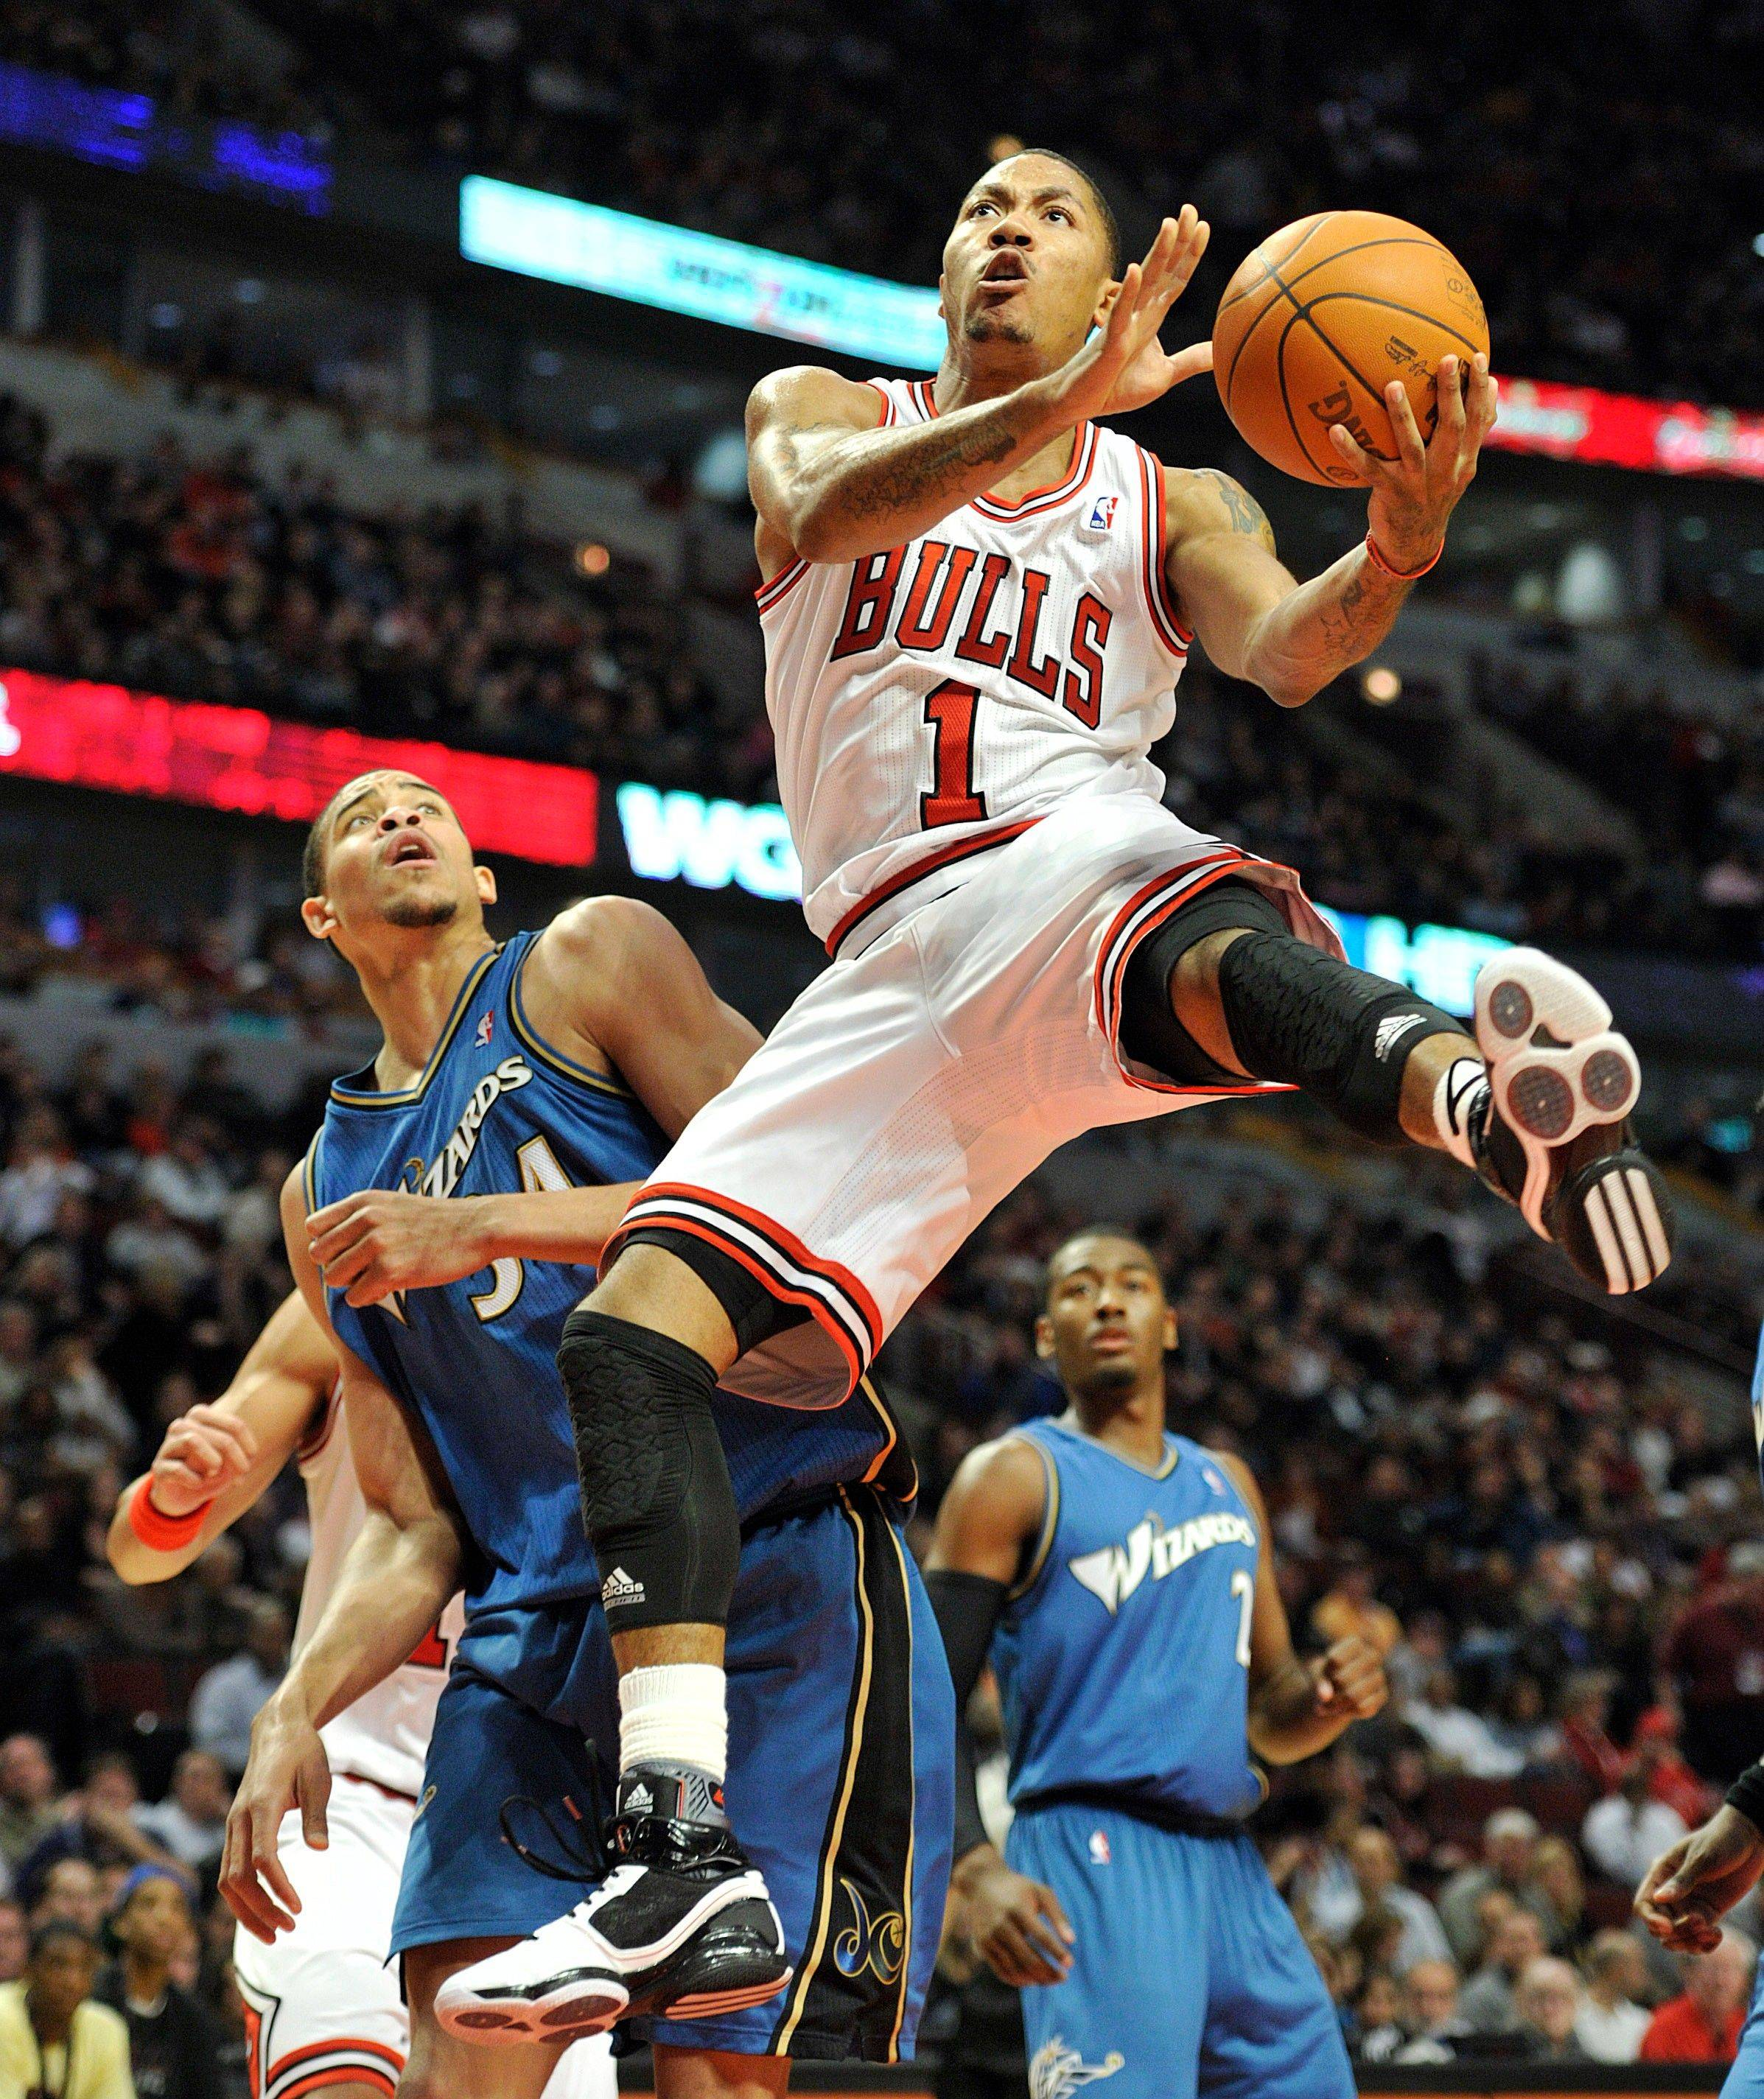 Washington Wizards' JaVale McGee left defends as the Chicago Bulls' Derrick Rose (1) drives to the basket during the second half of an NBA basketball game Saturday, Nov. 13, 2010, in Chicago. The Bulls defeated the Wizards 103-96.